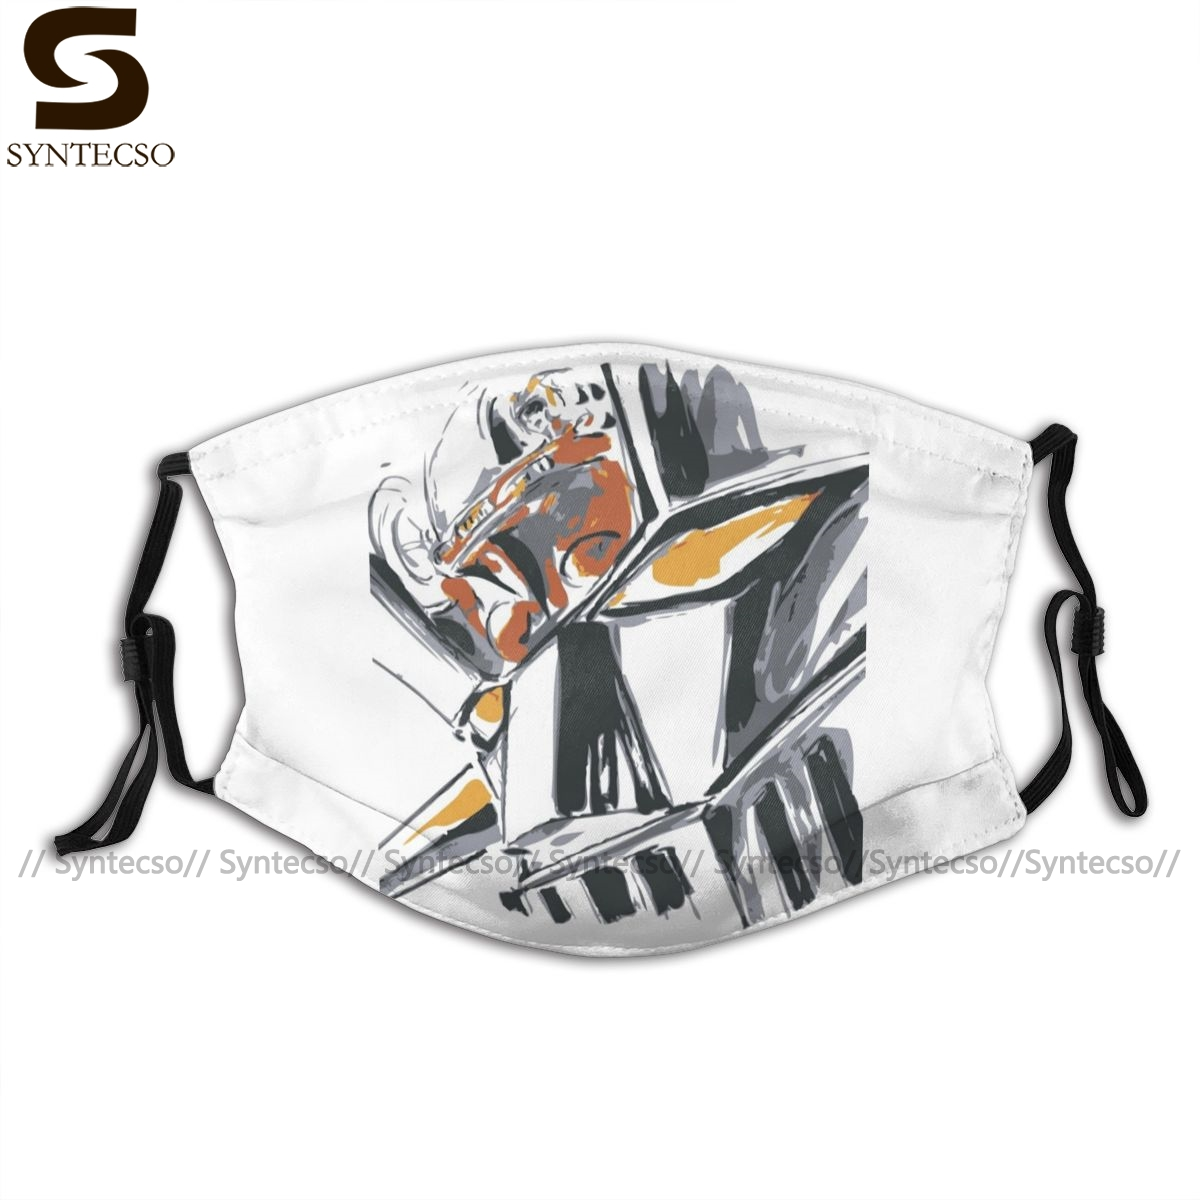 Mazinger Mouth Face Mask Mazinger Z Facial Mask Cool Fashion With 2 Filters For Adult